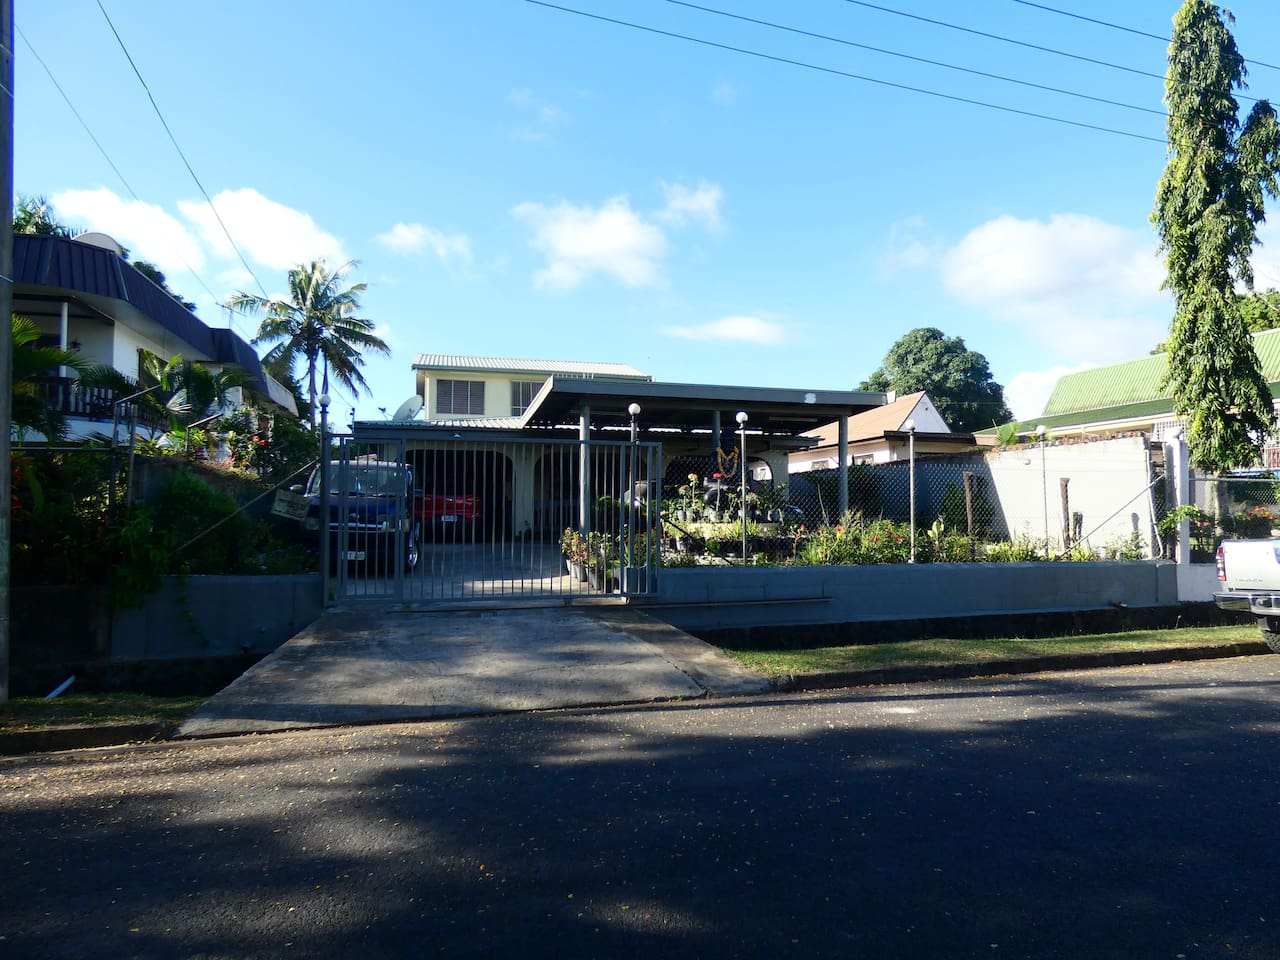 Front view of the Property, Property is fully secured in a very nice neighborhood